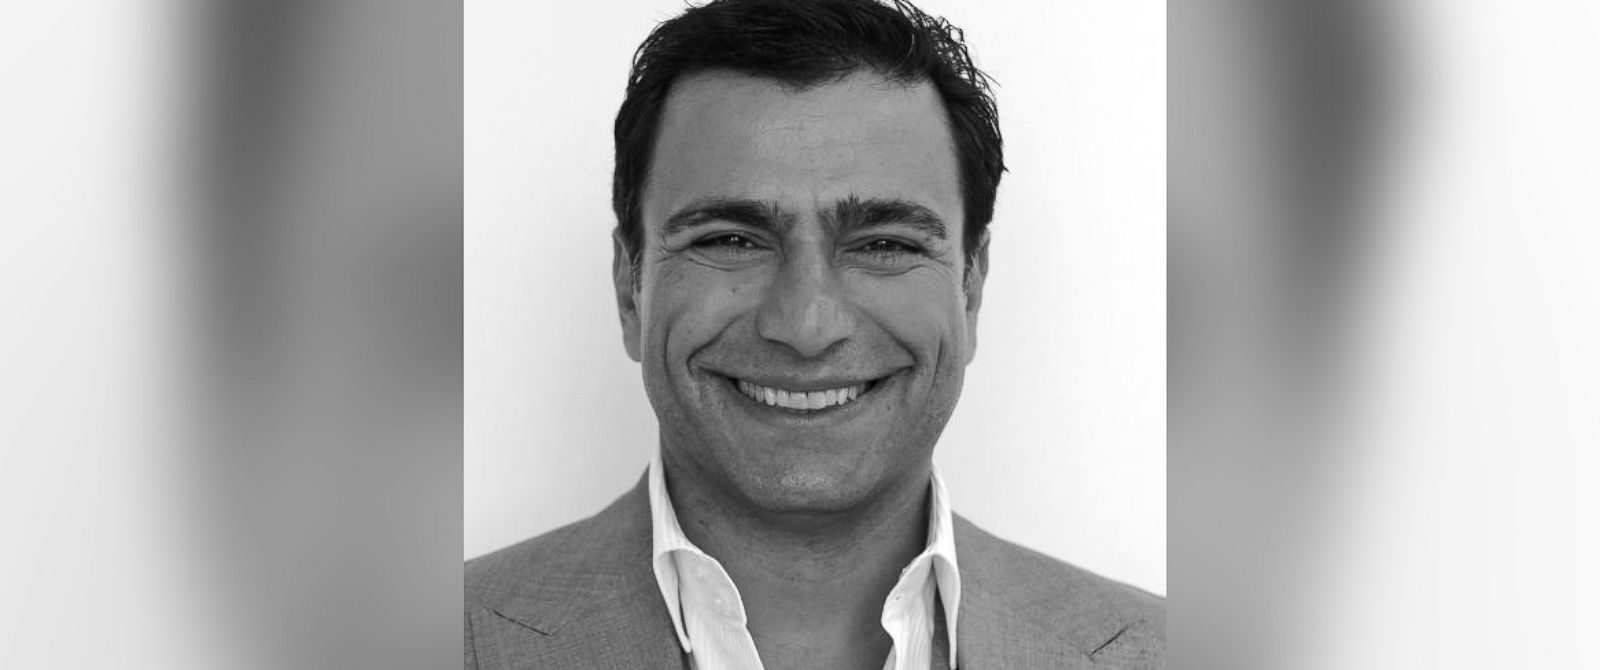 PHOTO: Omid Kordestani is pictured in this profile photo from his Twitter page.